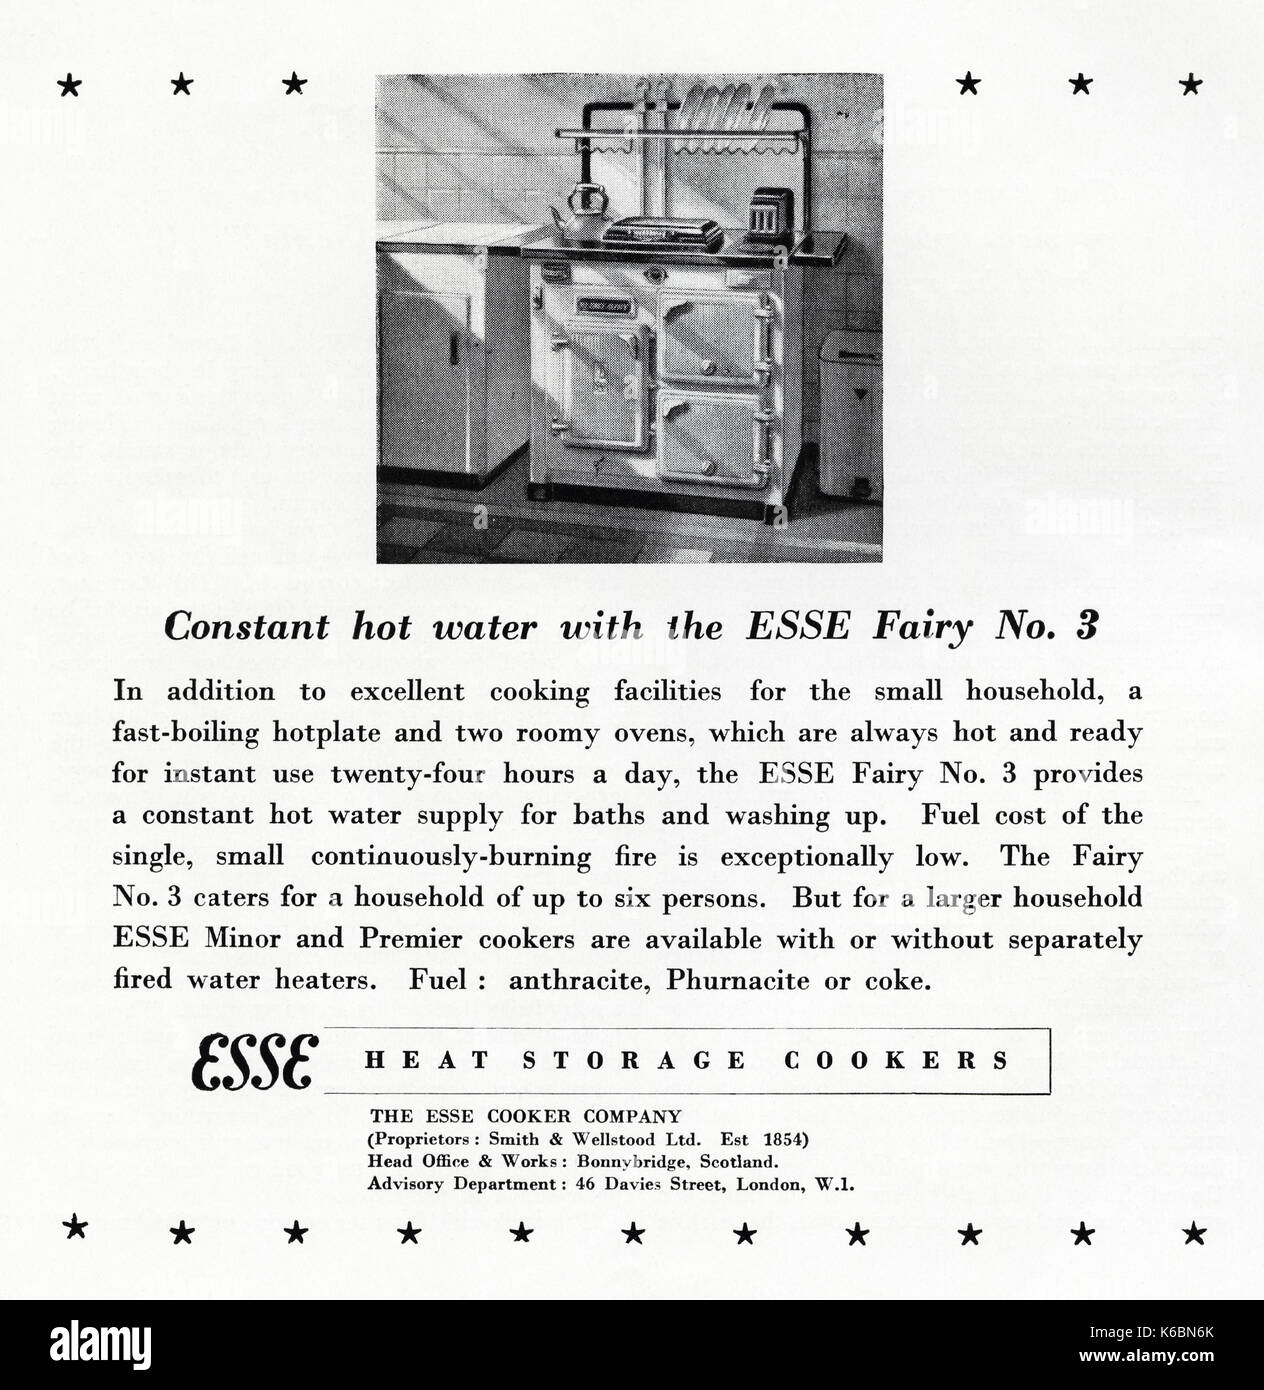 1940s old vintage original advert advertising Esse Fairy No 3 heat storage cookers in magazine circa 1947 when supplies were still restricted under post-war rationing - Stock Image